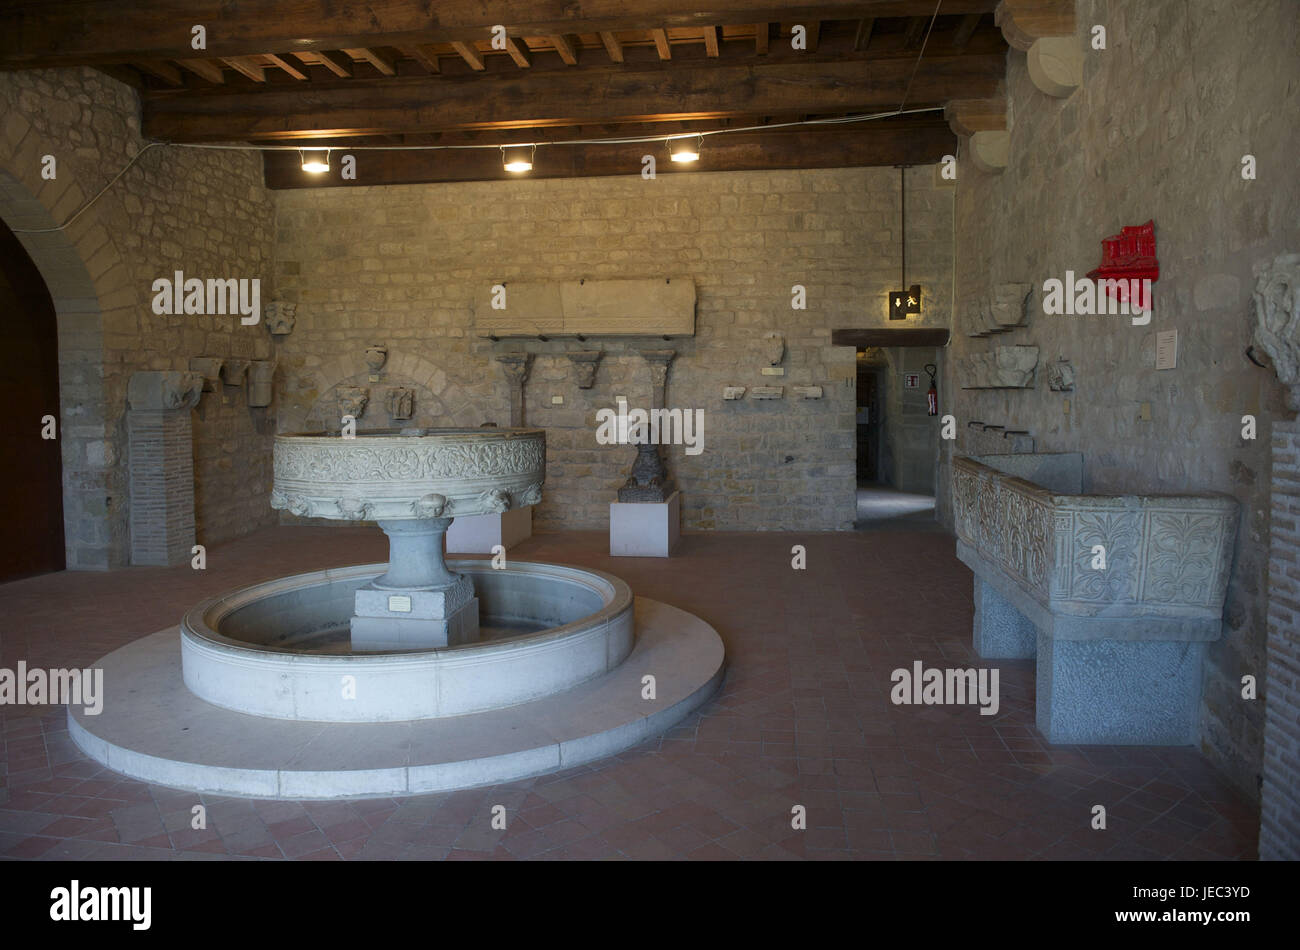 France, region Aude, Carcassonne, museum with stone artefacts, - Stock Image